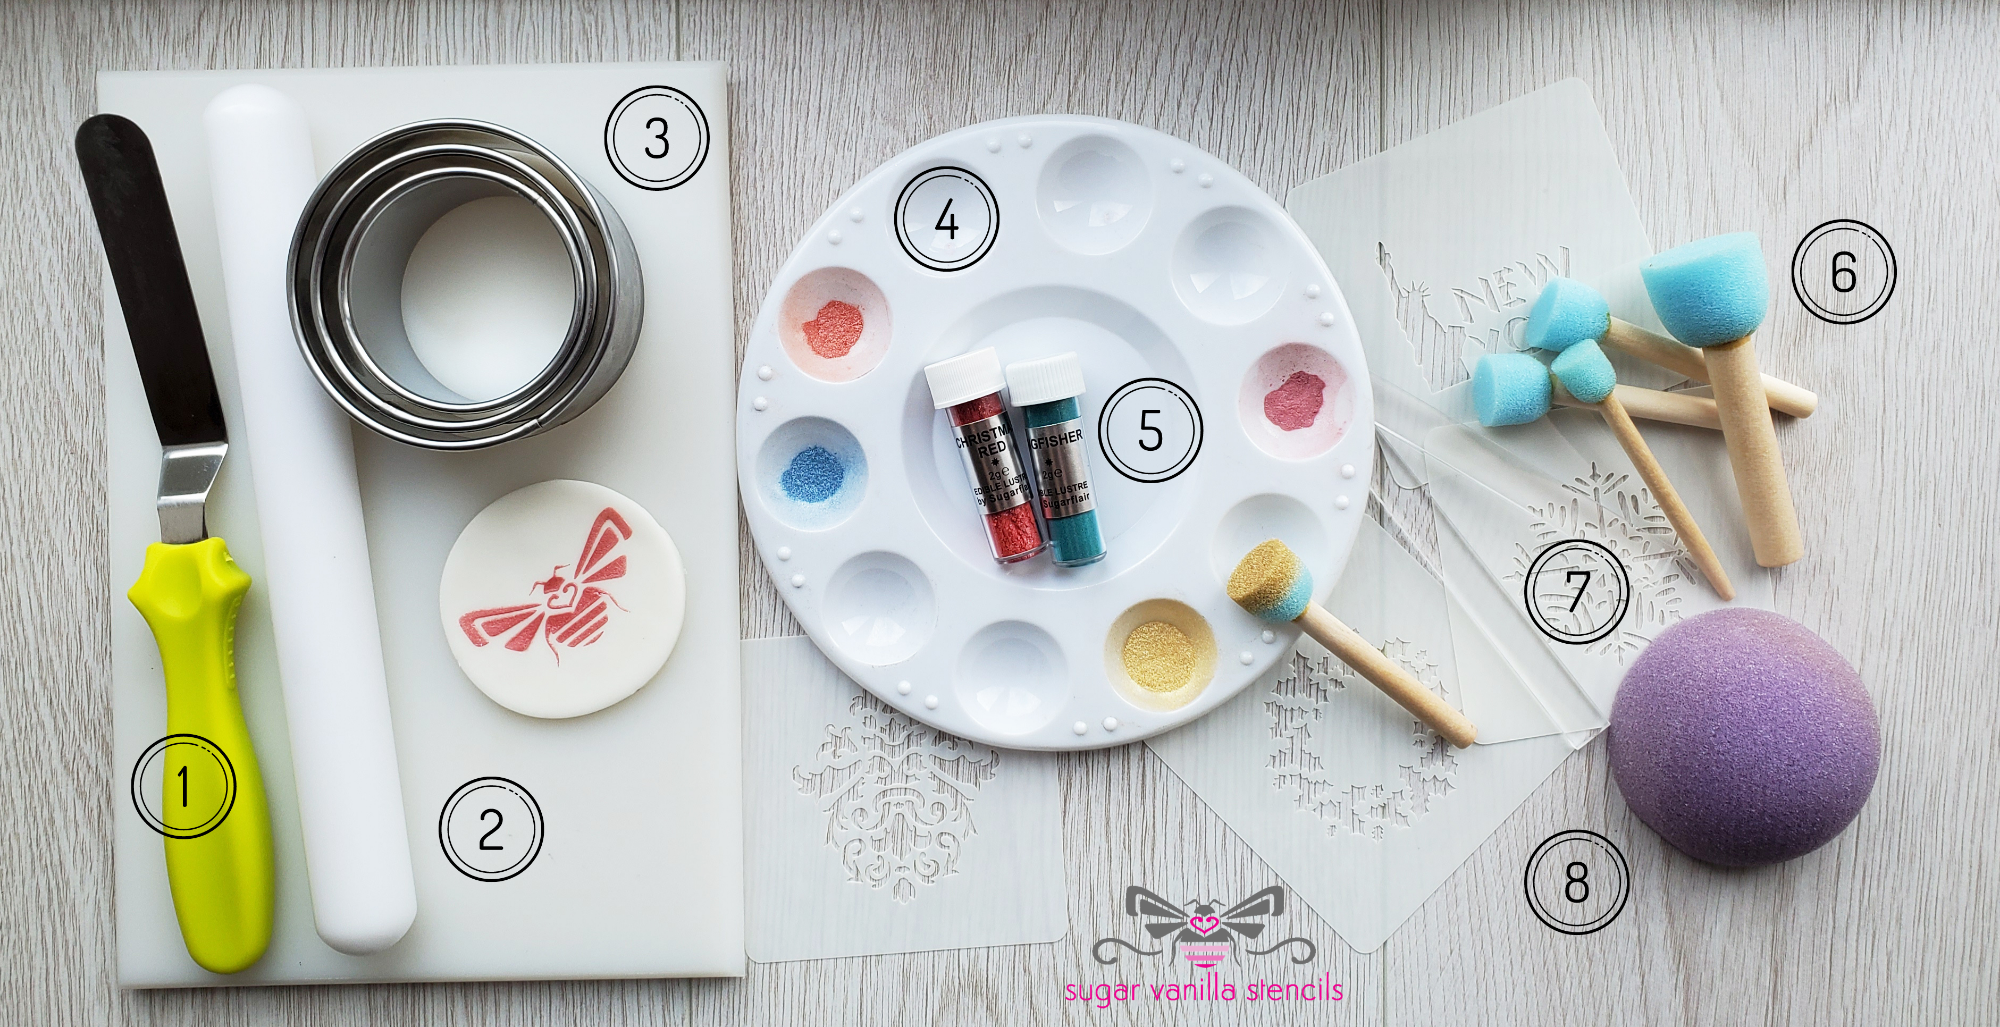 Selection of tools for stencilling cupcake toppers with lustre dusts